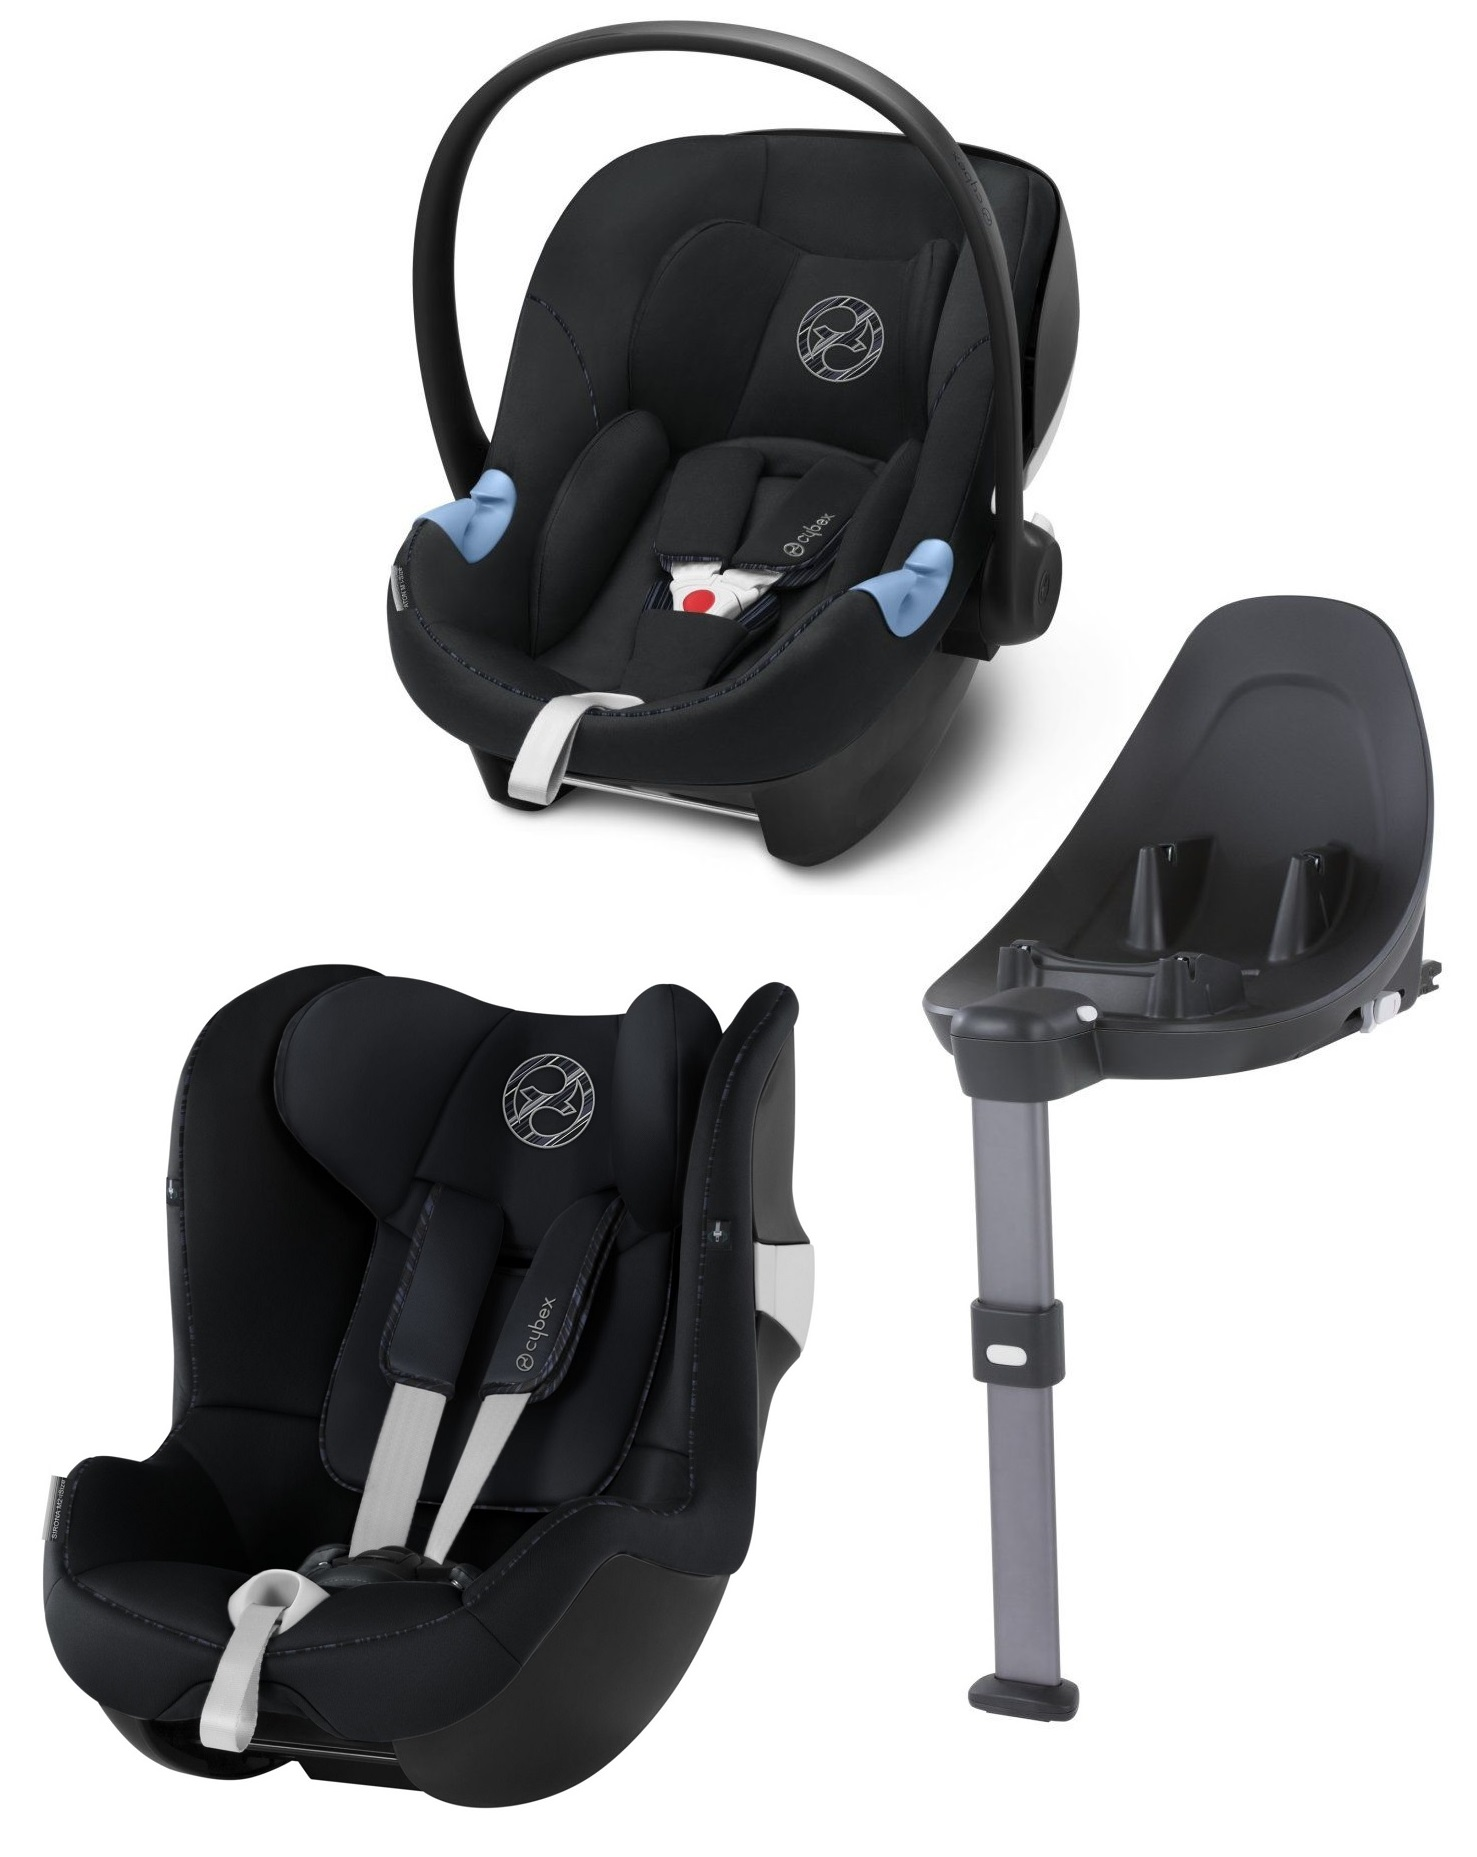 autokindersitz cybex test cybex sirona reboarder. Black Bedroom Furniture Sets. Home Design Ideas